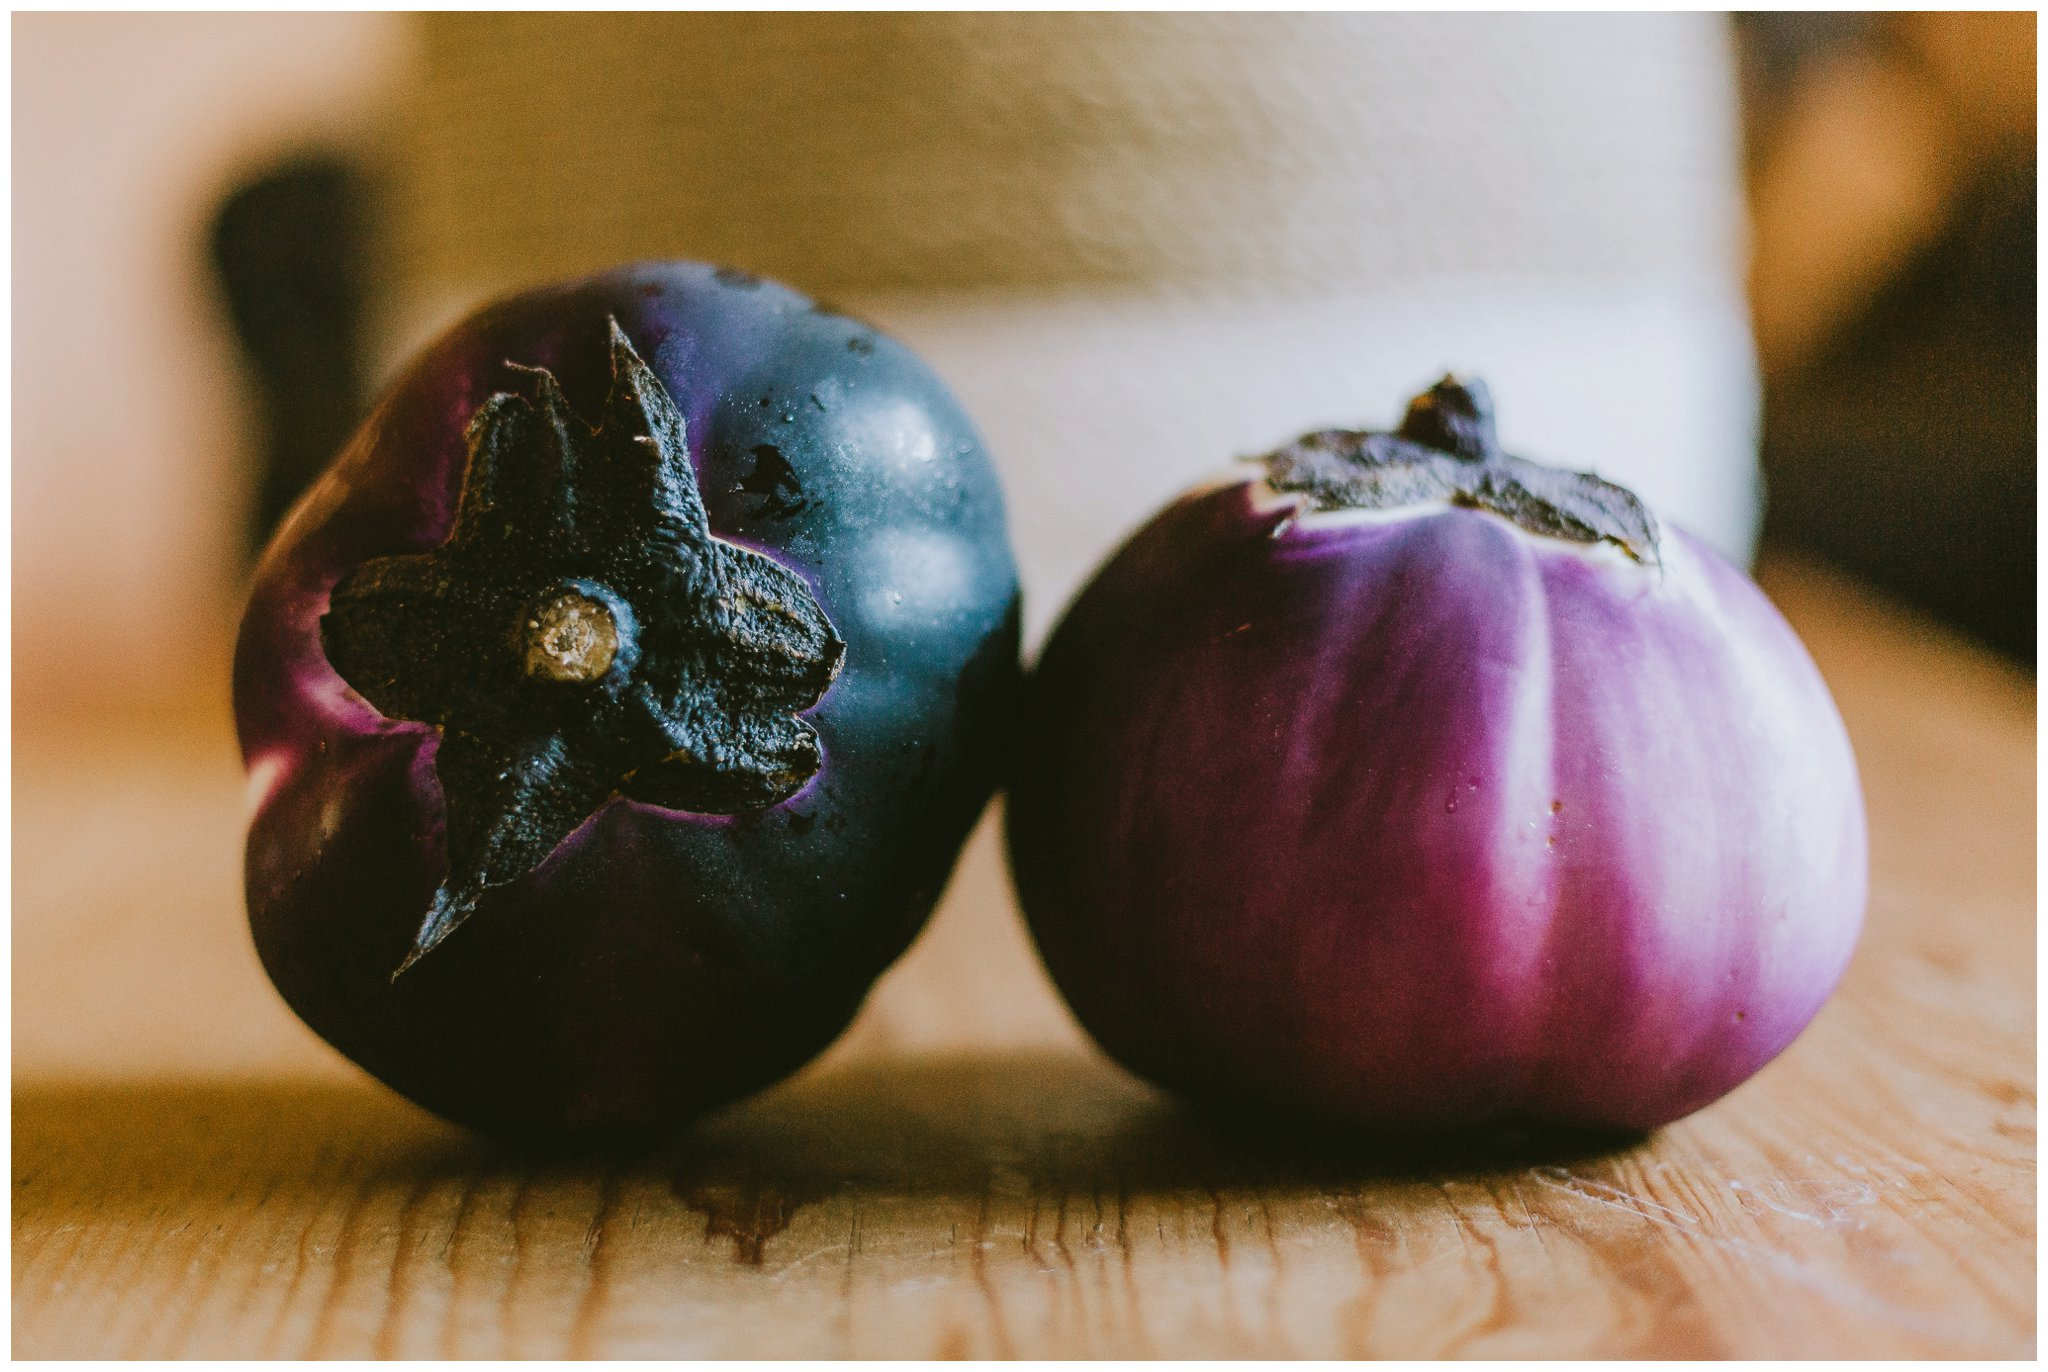 710 U Pick | Egg plant Parmesan recipe| Mom photographer | Moms who cook | Organic life | Moms of littles | Jupiter phototgrapher_0128.jpg